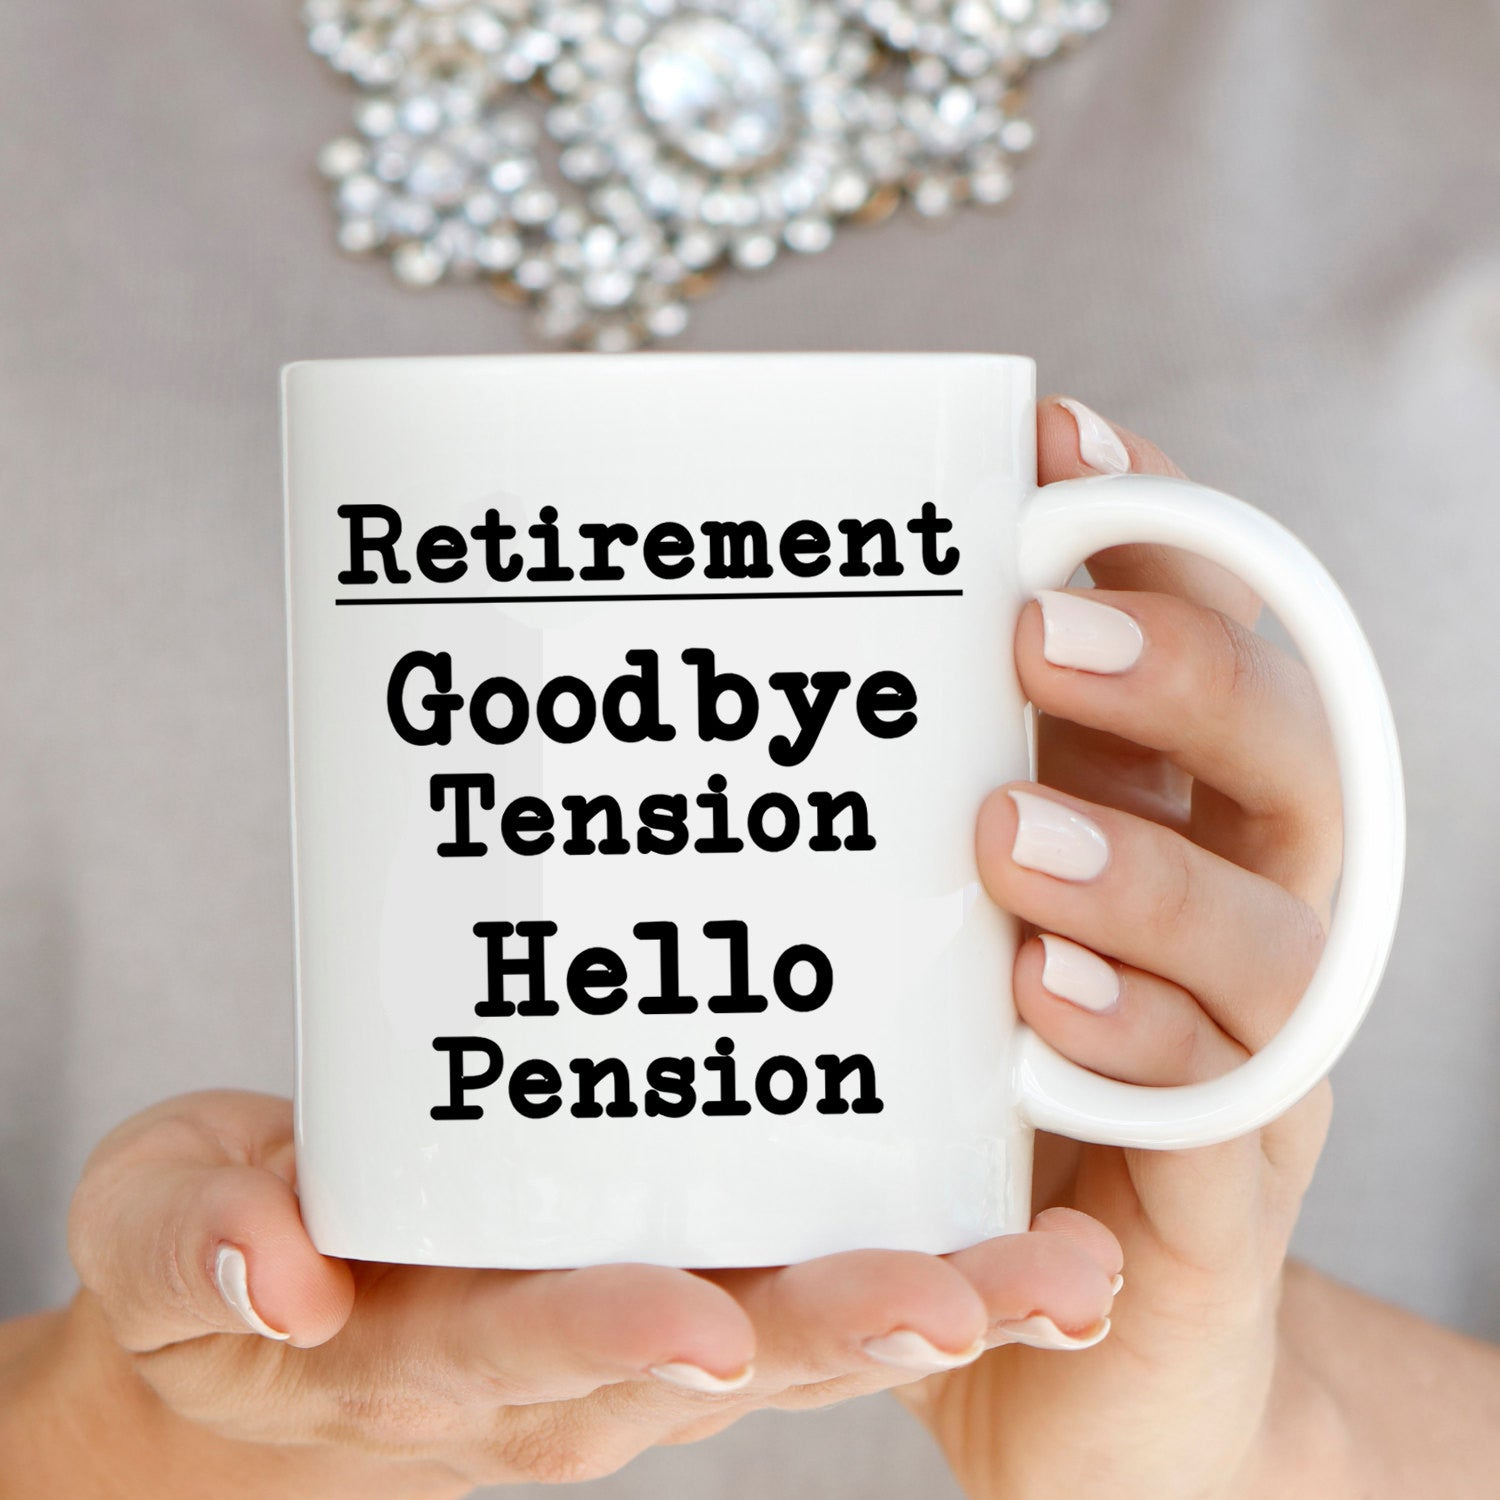 Goodbye Tension Hello Pension Funny Humorous Retirement Gag Gifts Coffee Mug for Coworkers Boss Men and